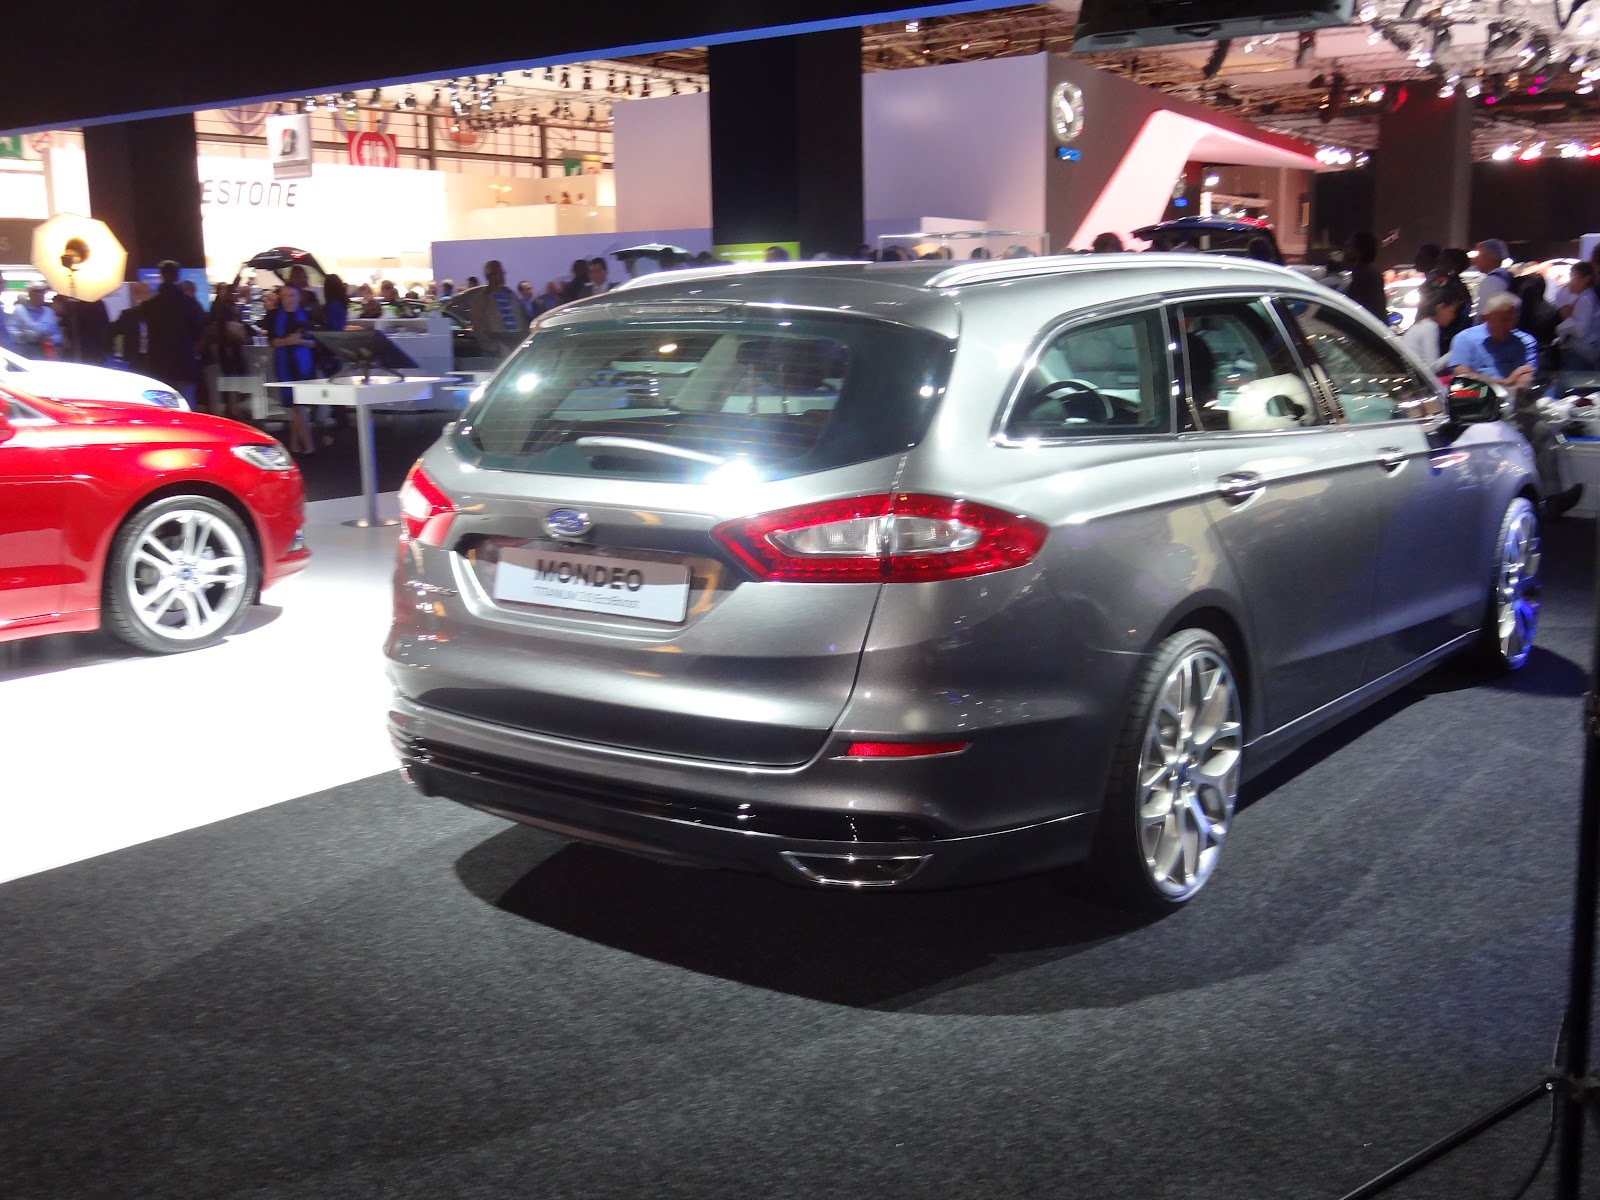 Ford Mondeo 2013 official info images and review  Test and Review